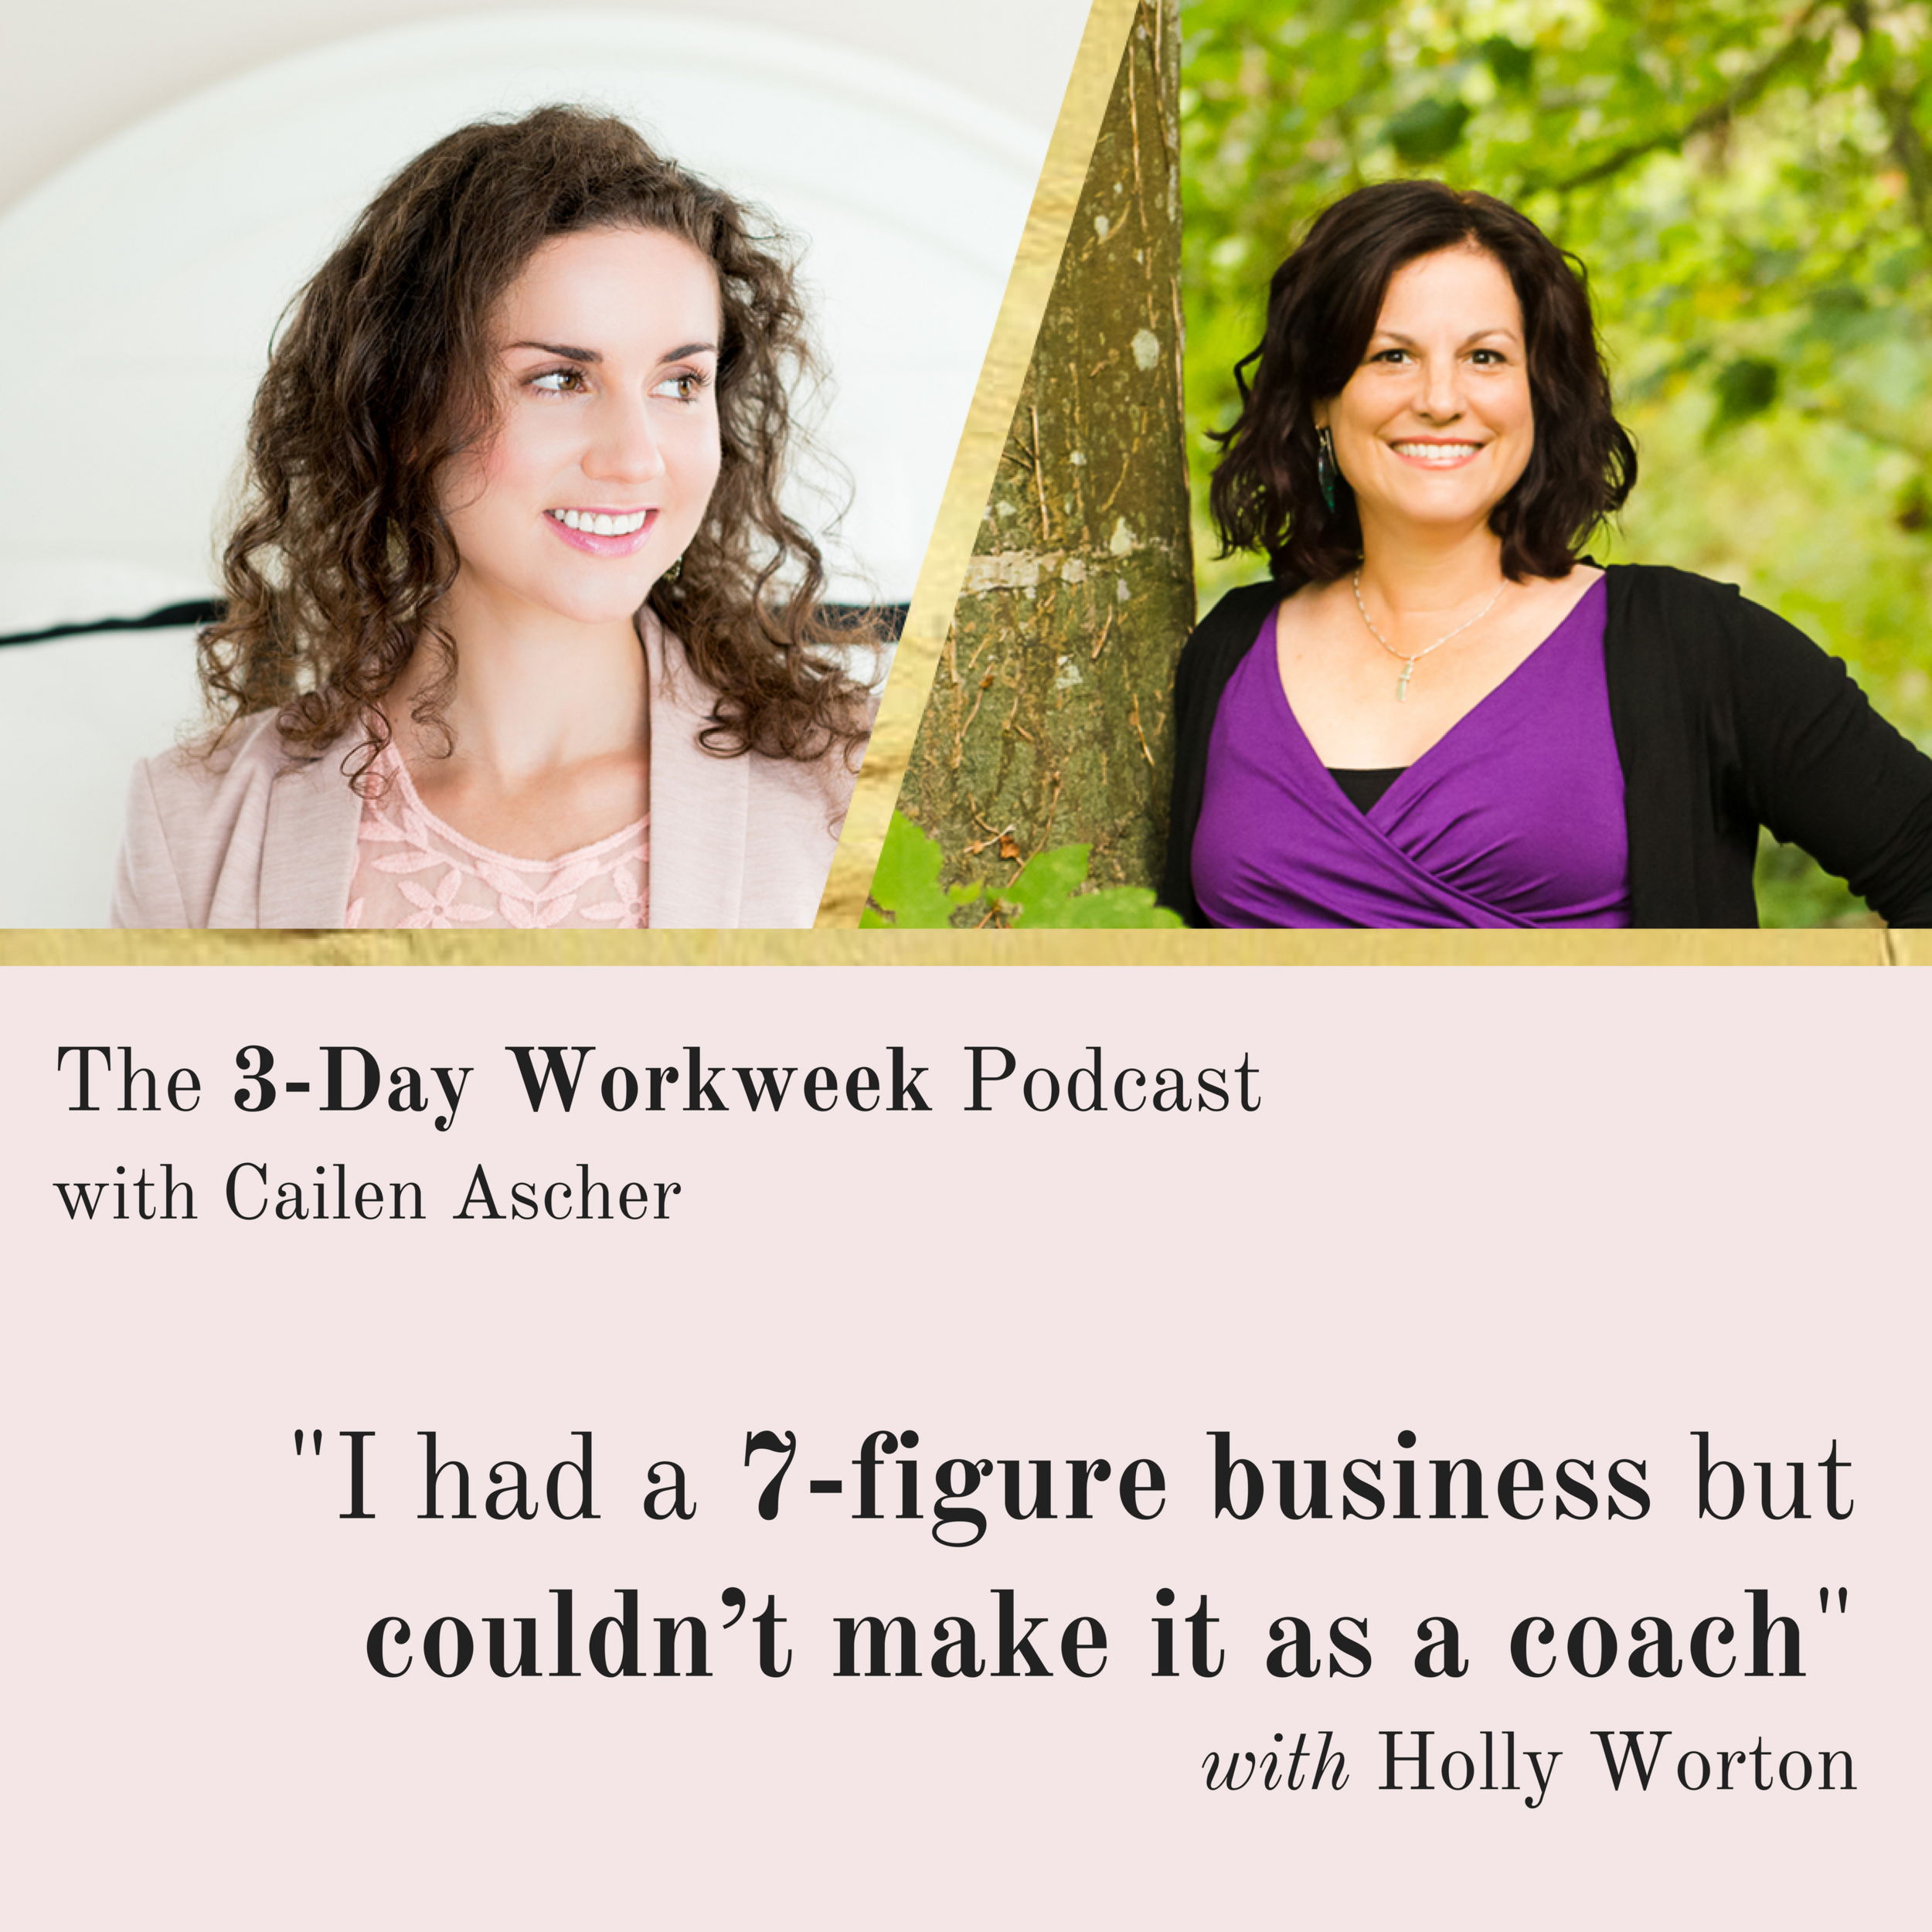 The 3-Day Workweek Podcast with Cailen Ascher - 2018-09-05 - %22I had a 7-figure business but couldn't make it as a coach%22 with Holly Worton - Square Promo Image.png